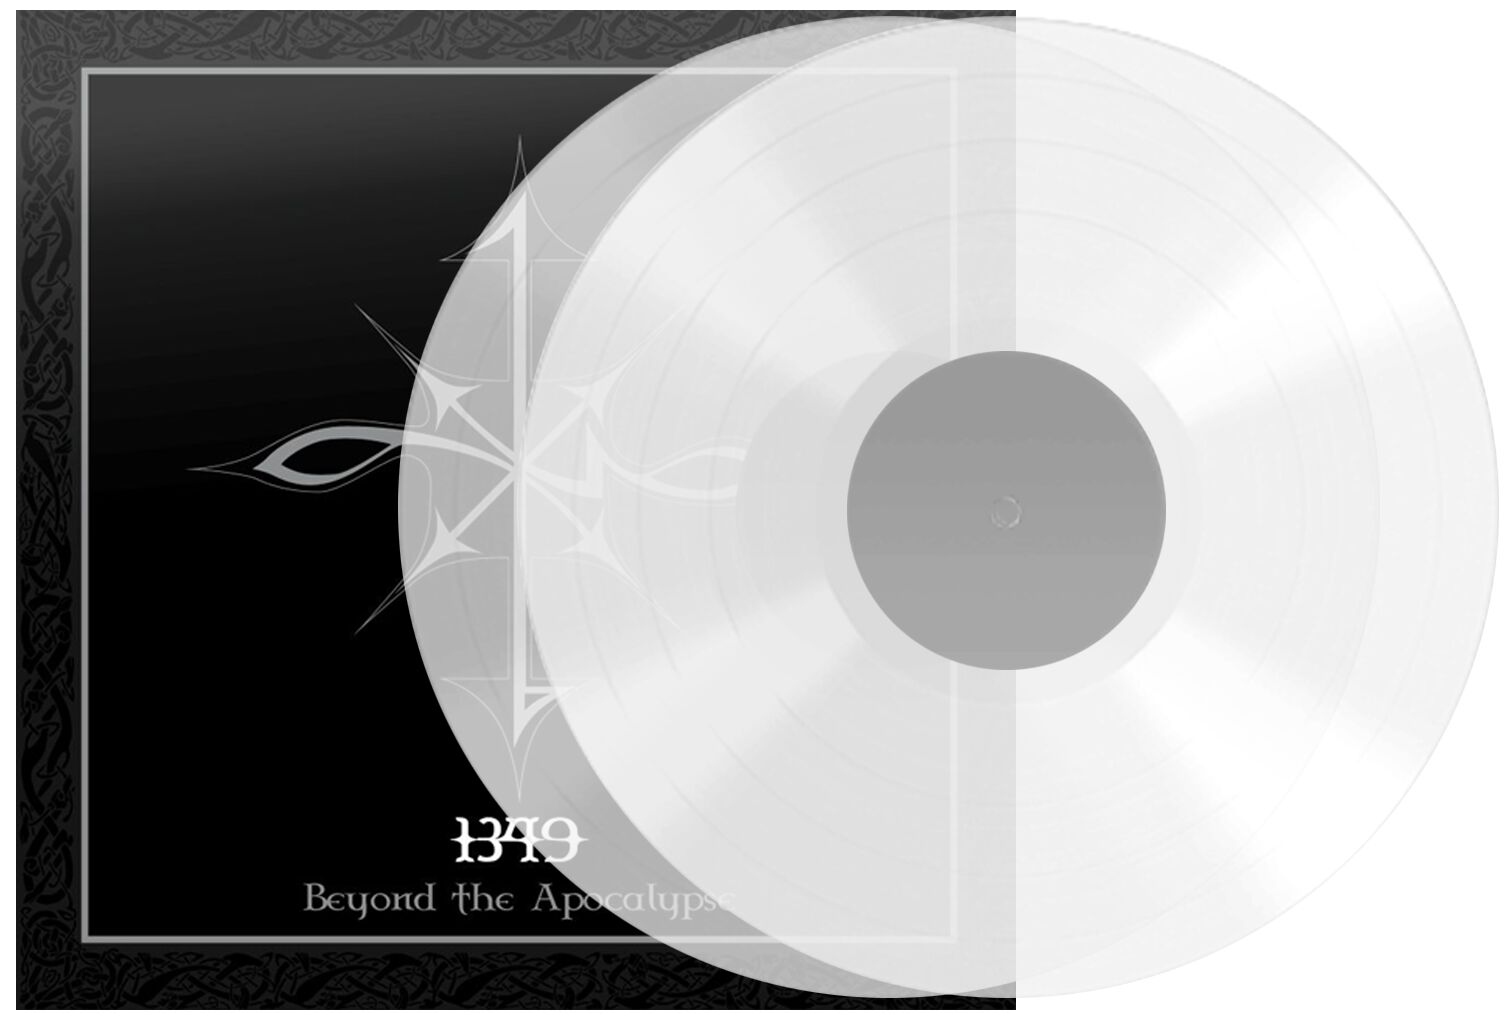 Image of 1349 Beyond the apocalypse 2-LP klar